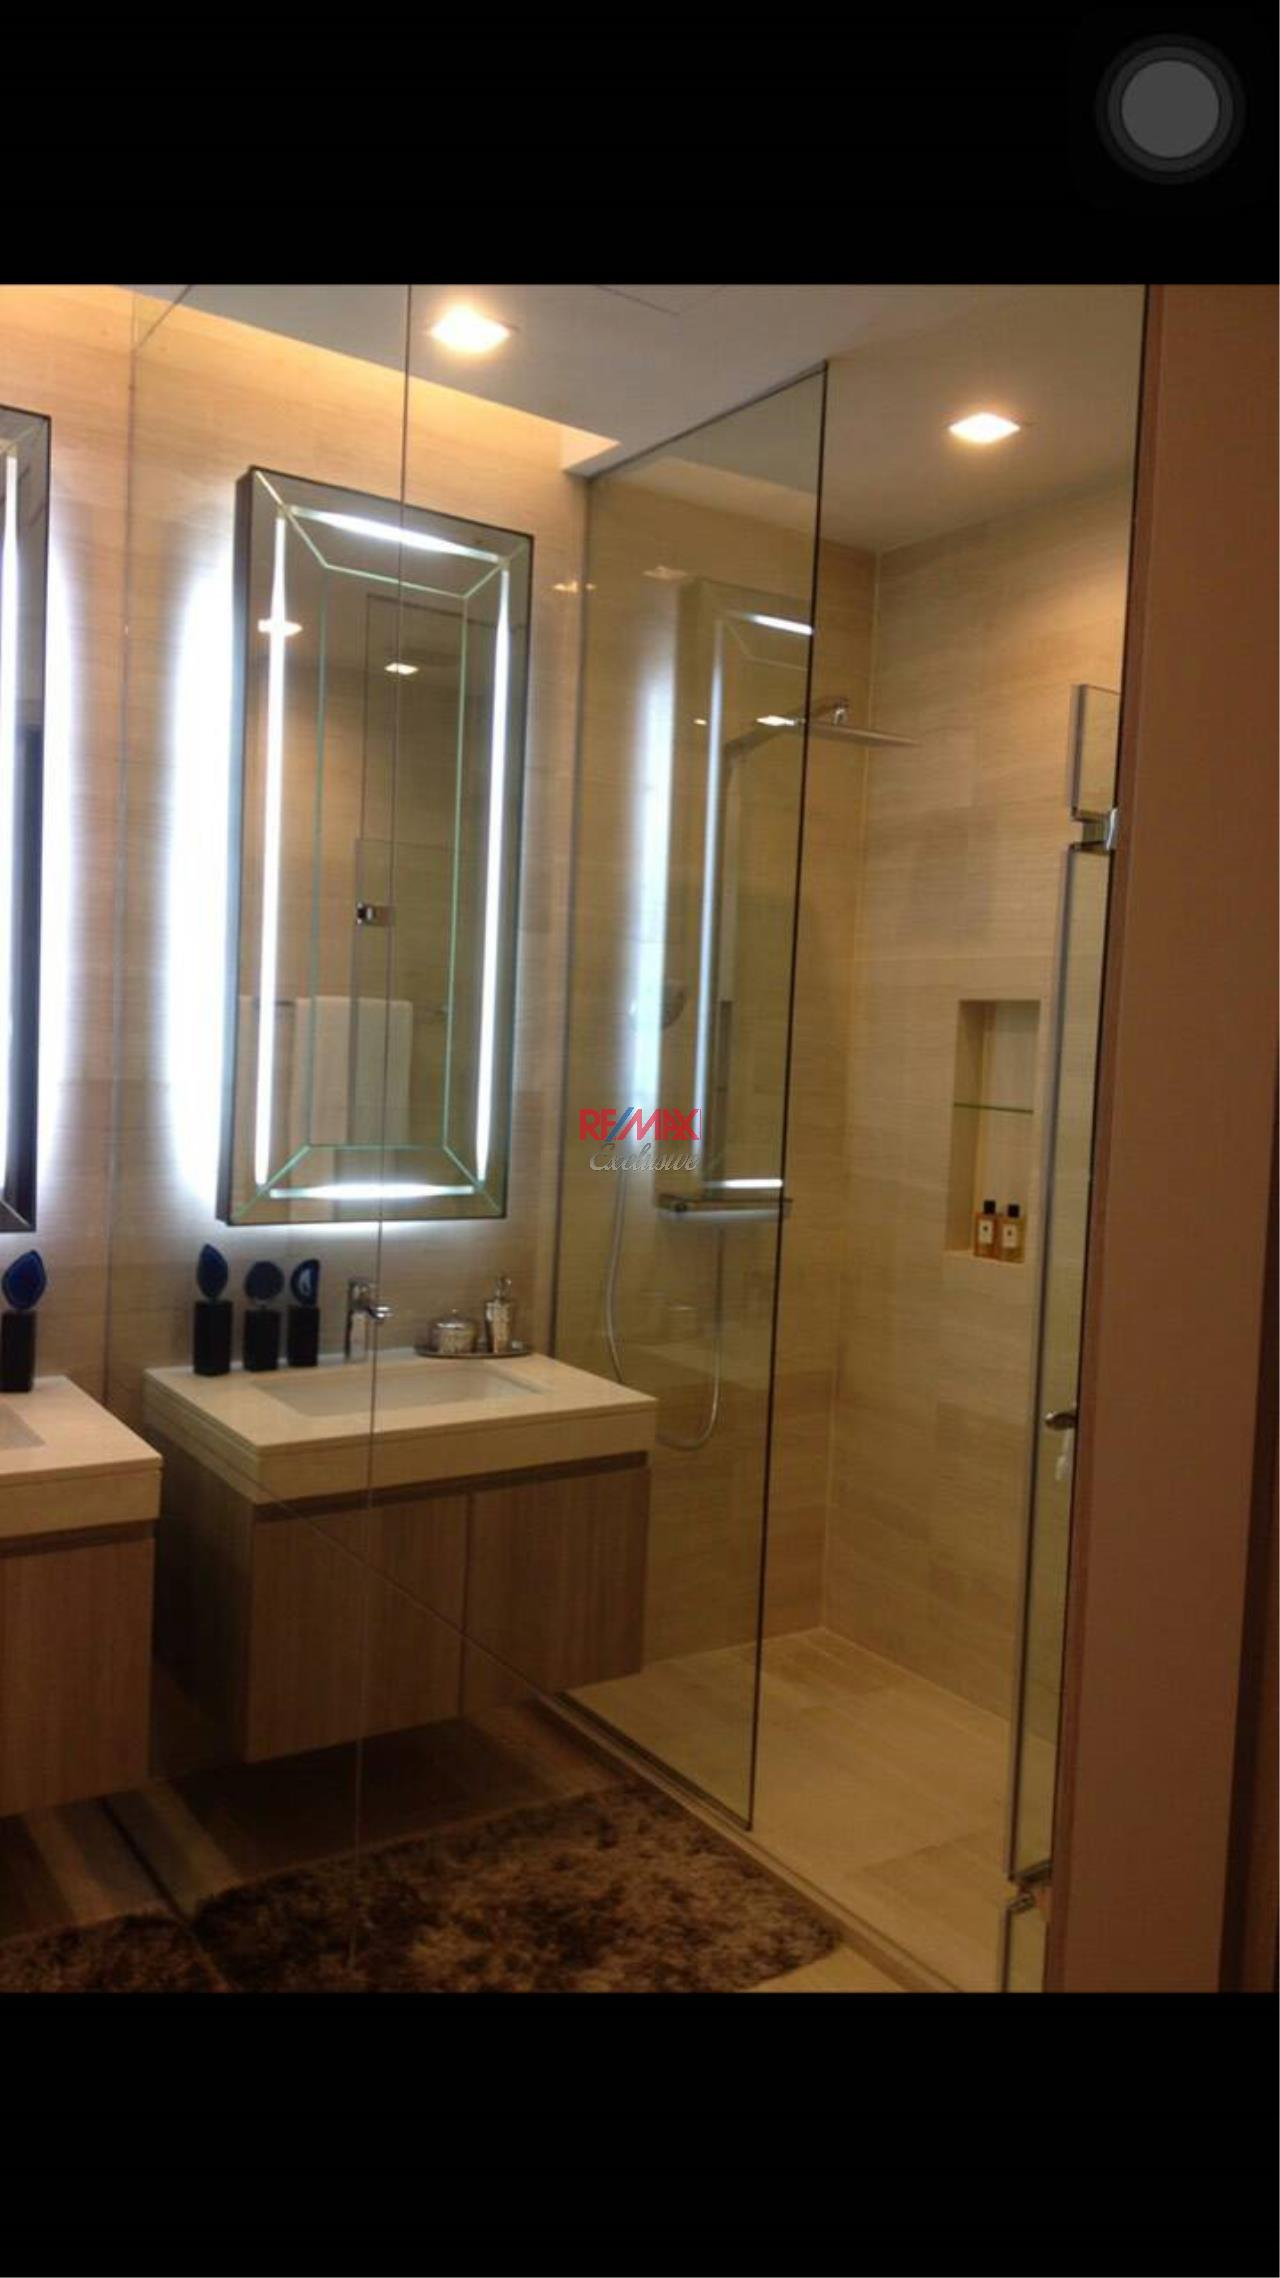 RE/MAX Exclusive Agency's The XXXIX By Sansiri 1 Bedroom For Sale with Tenant 15,200,000 THB!! 12